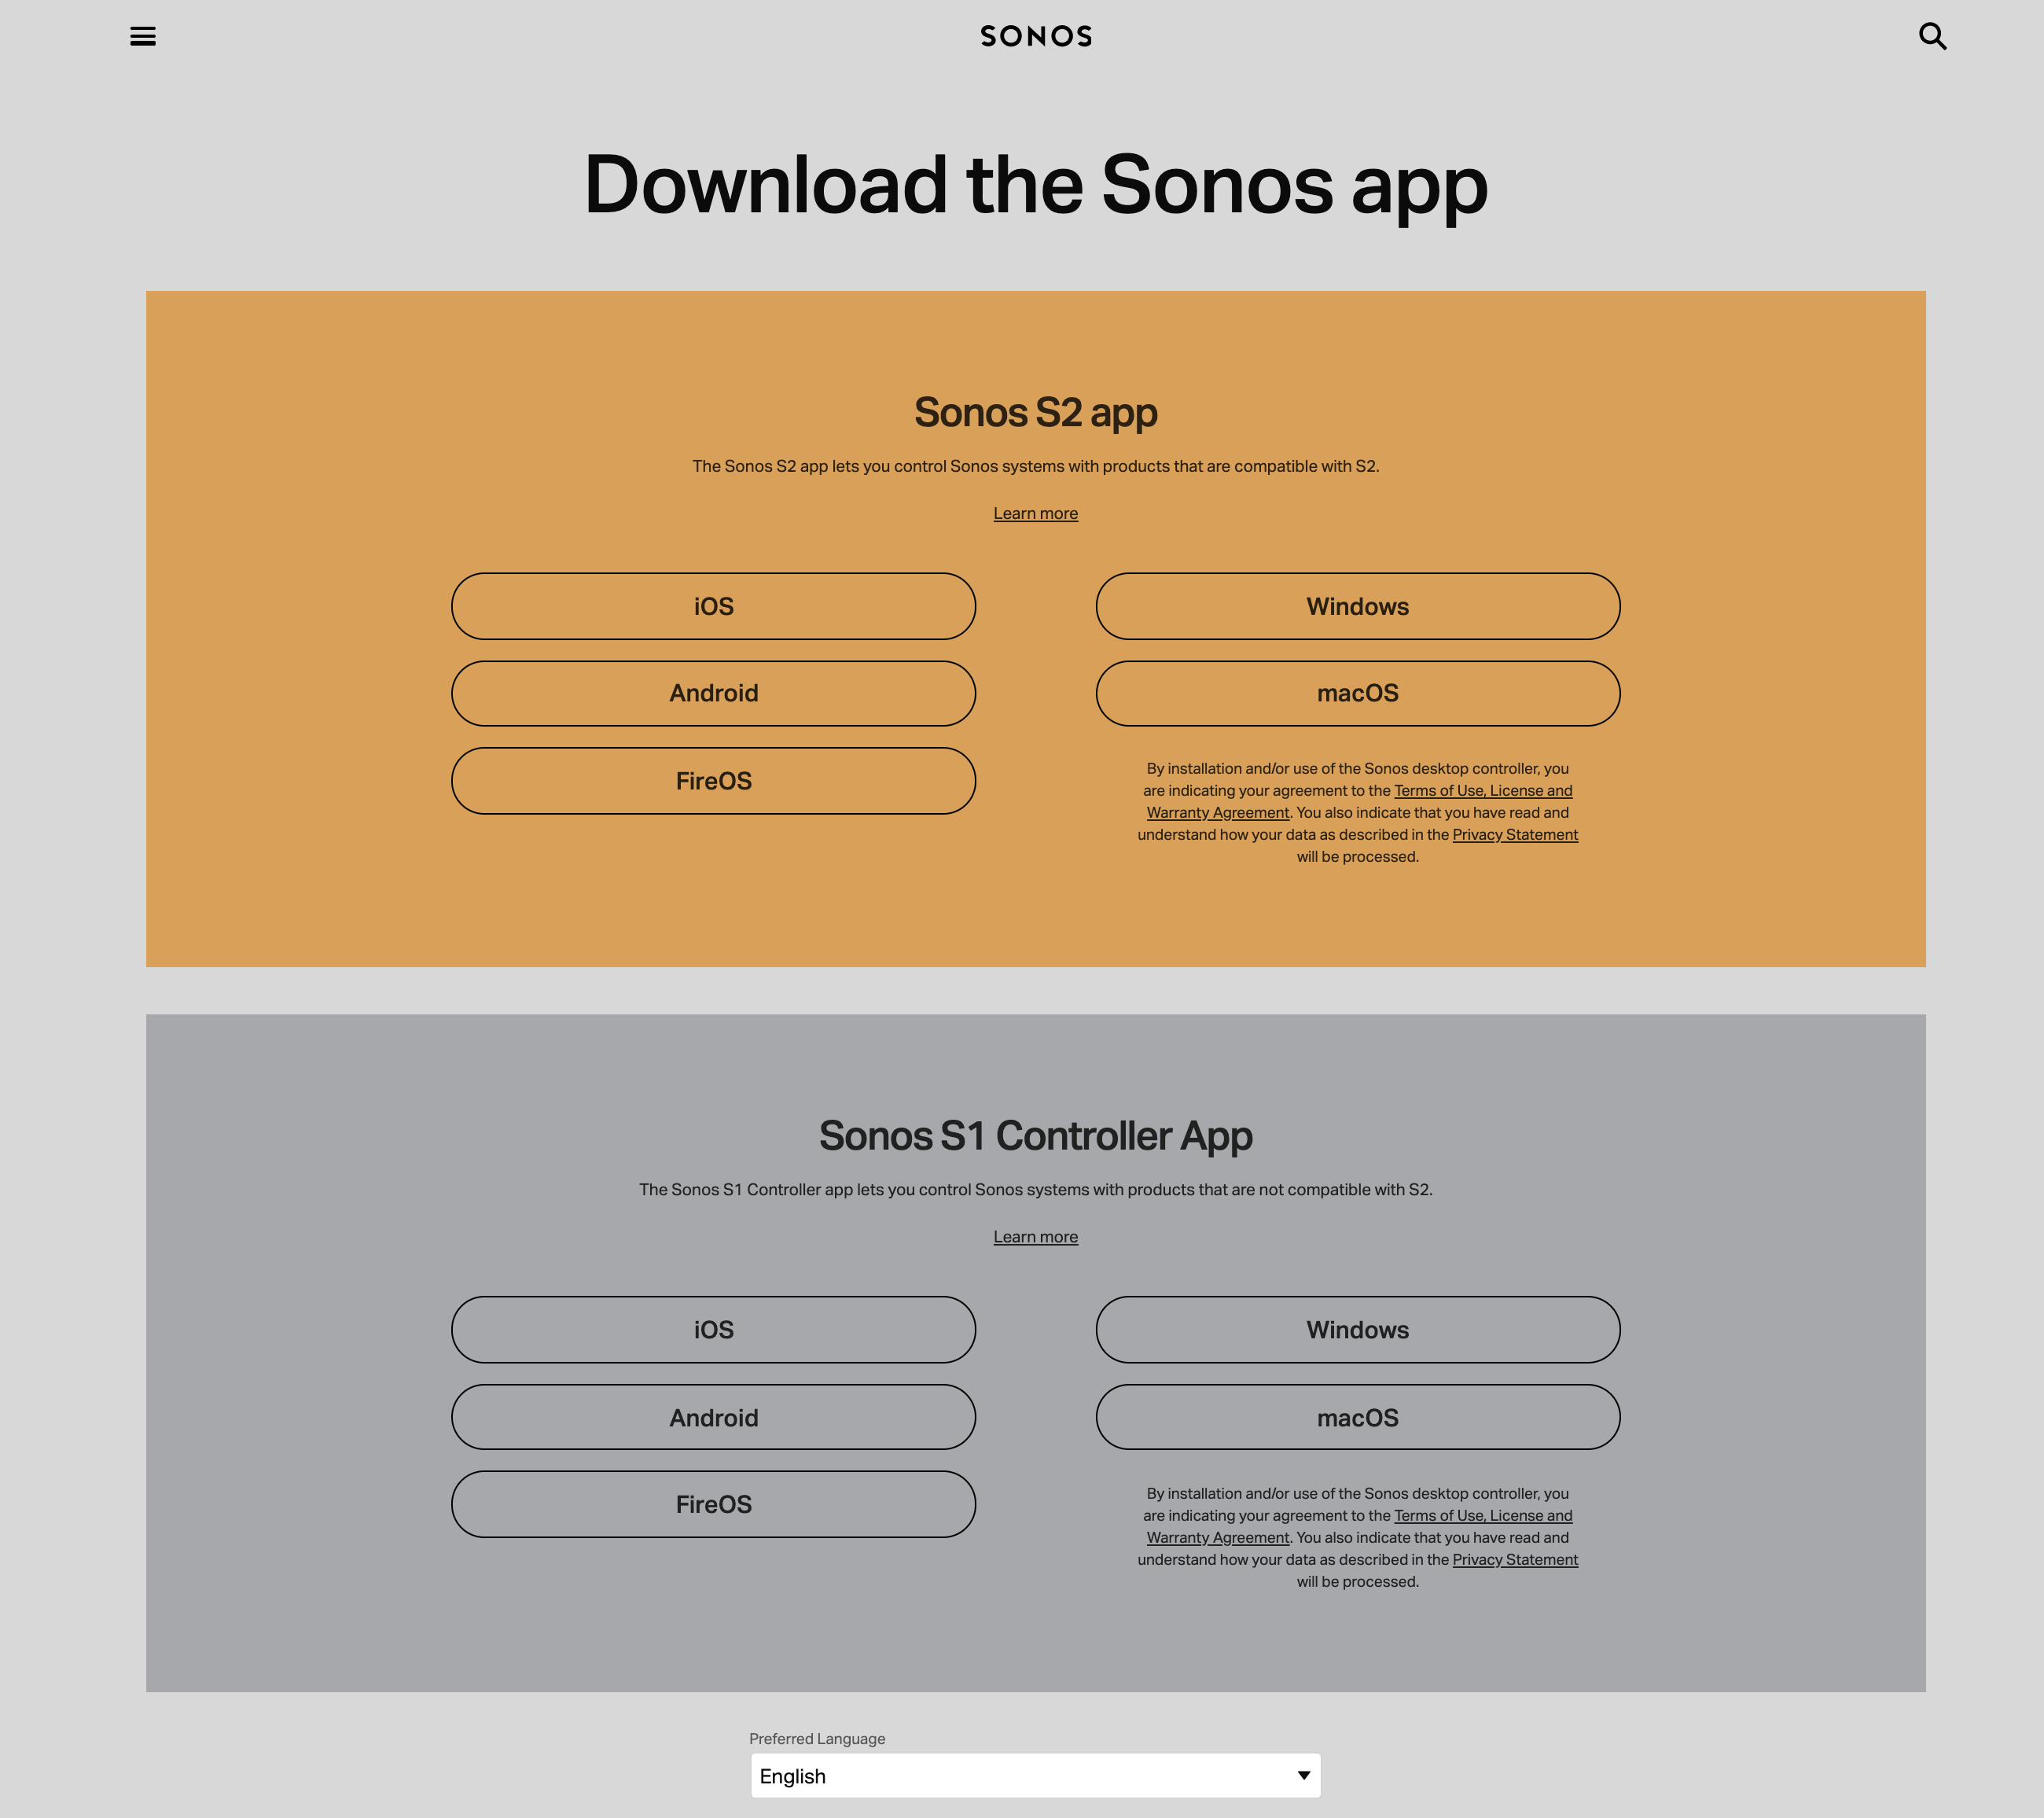 Sonos download page EN